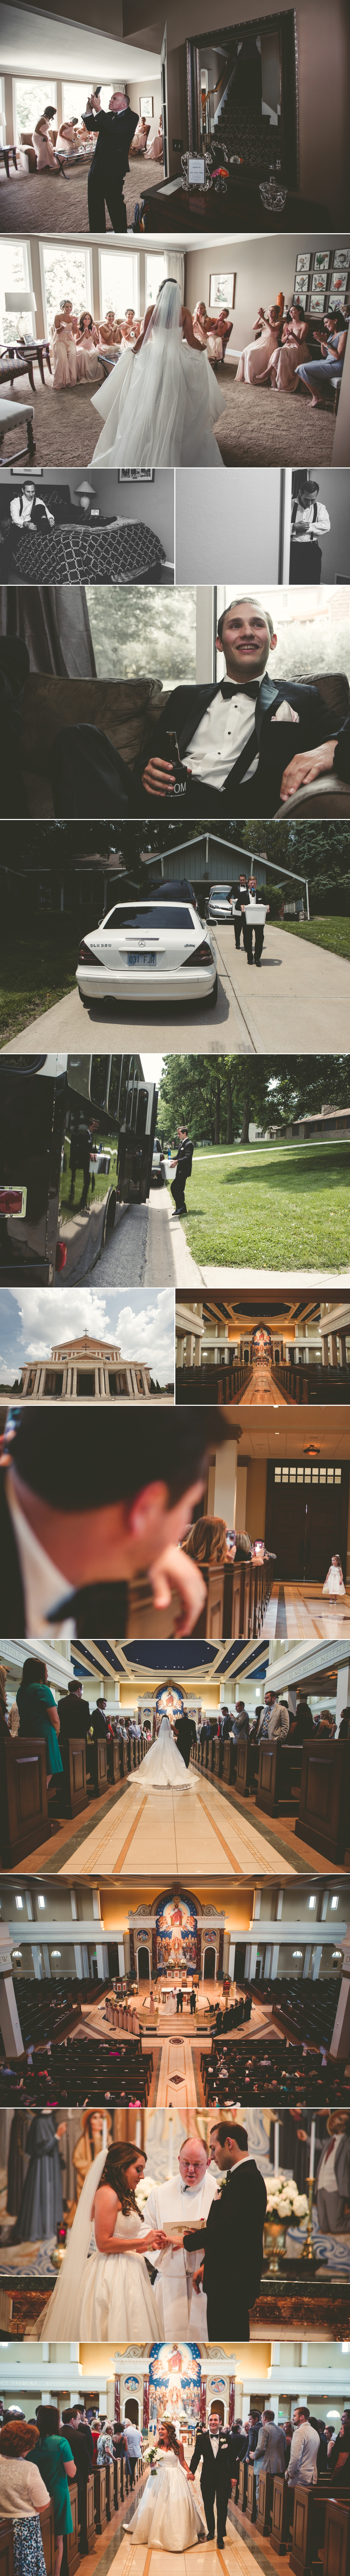 jason_domingues_photography_best_kansas_city_wedding_photographer_kc_carriage_club_2